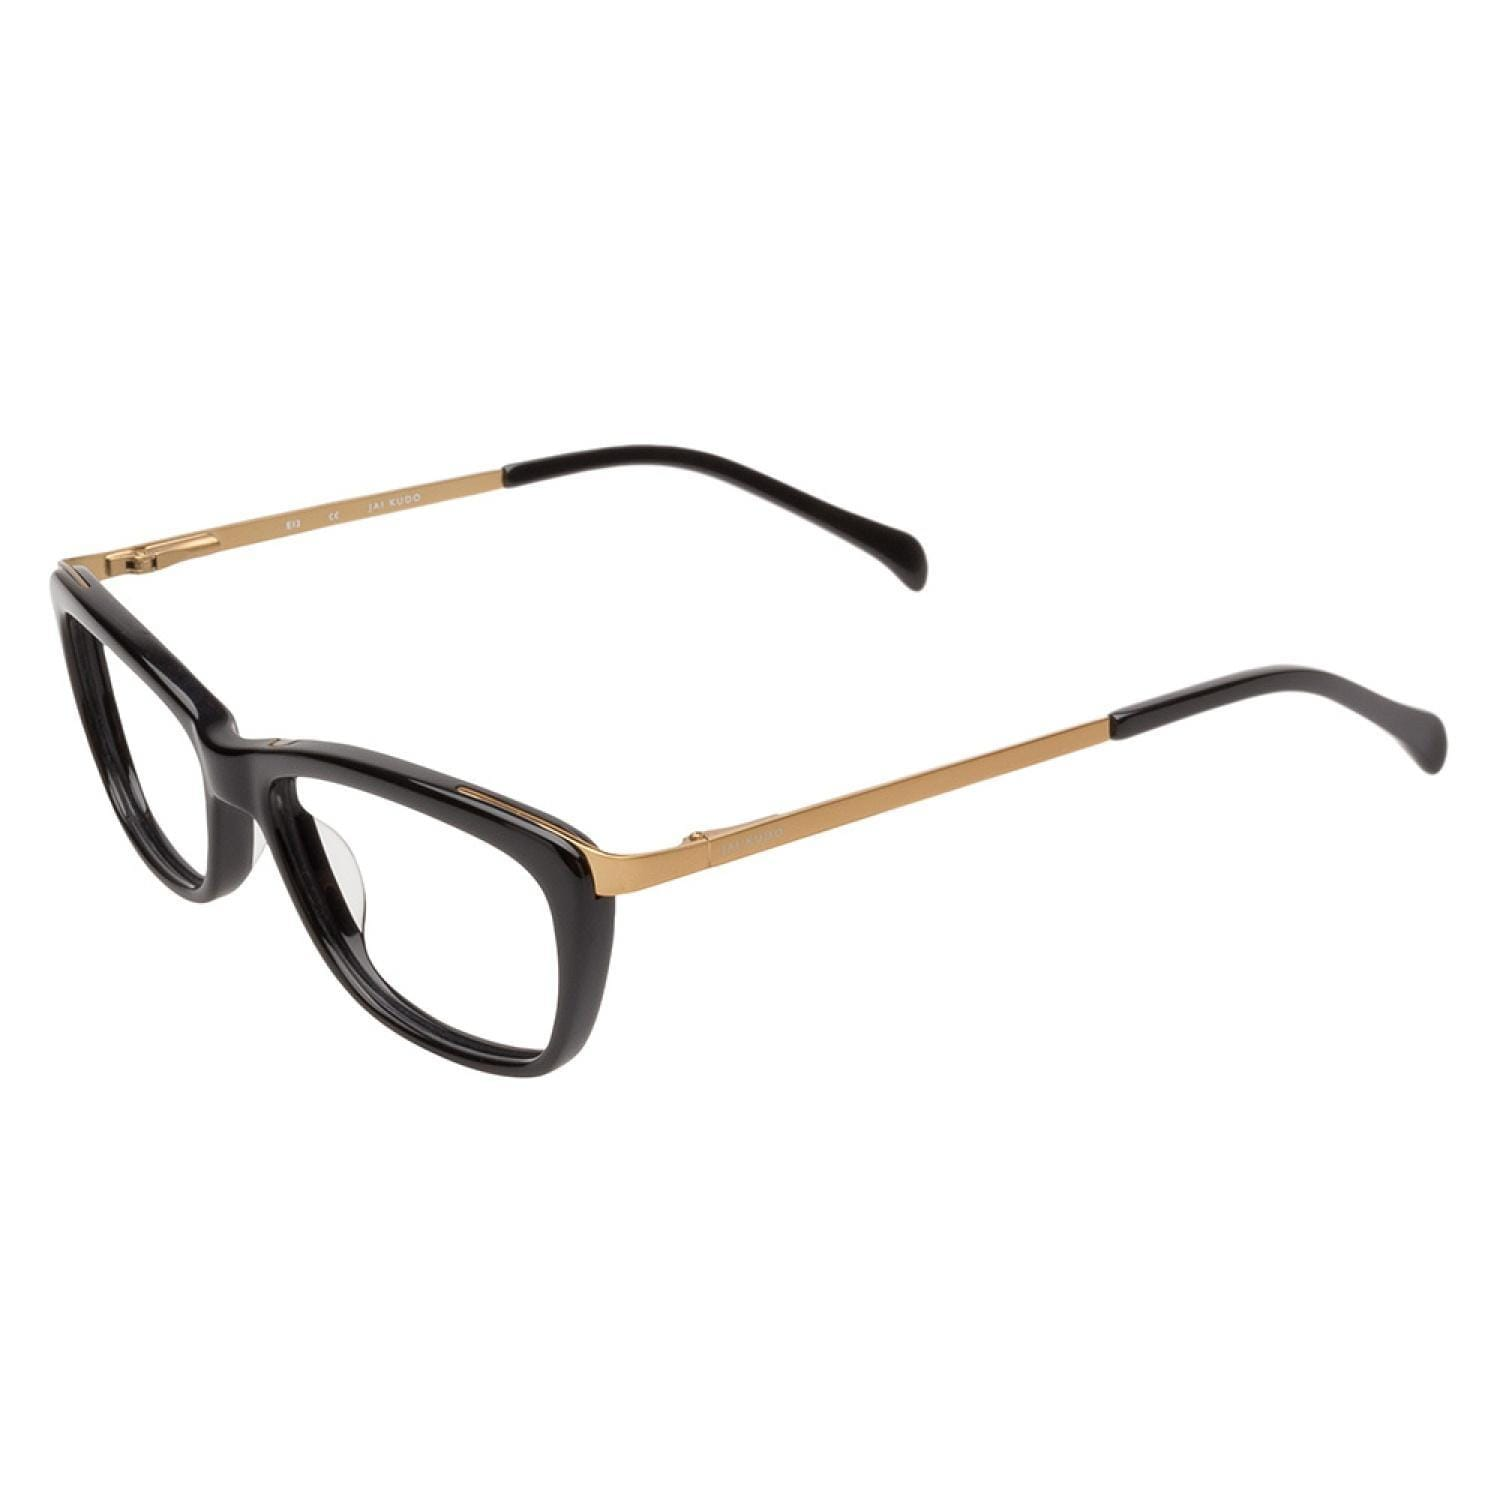 e8b0ea3a82 Shop Jai Kudo 1851 P01 Black Gold Prescription Eyeglasses - Ships To ...